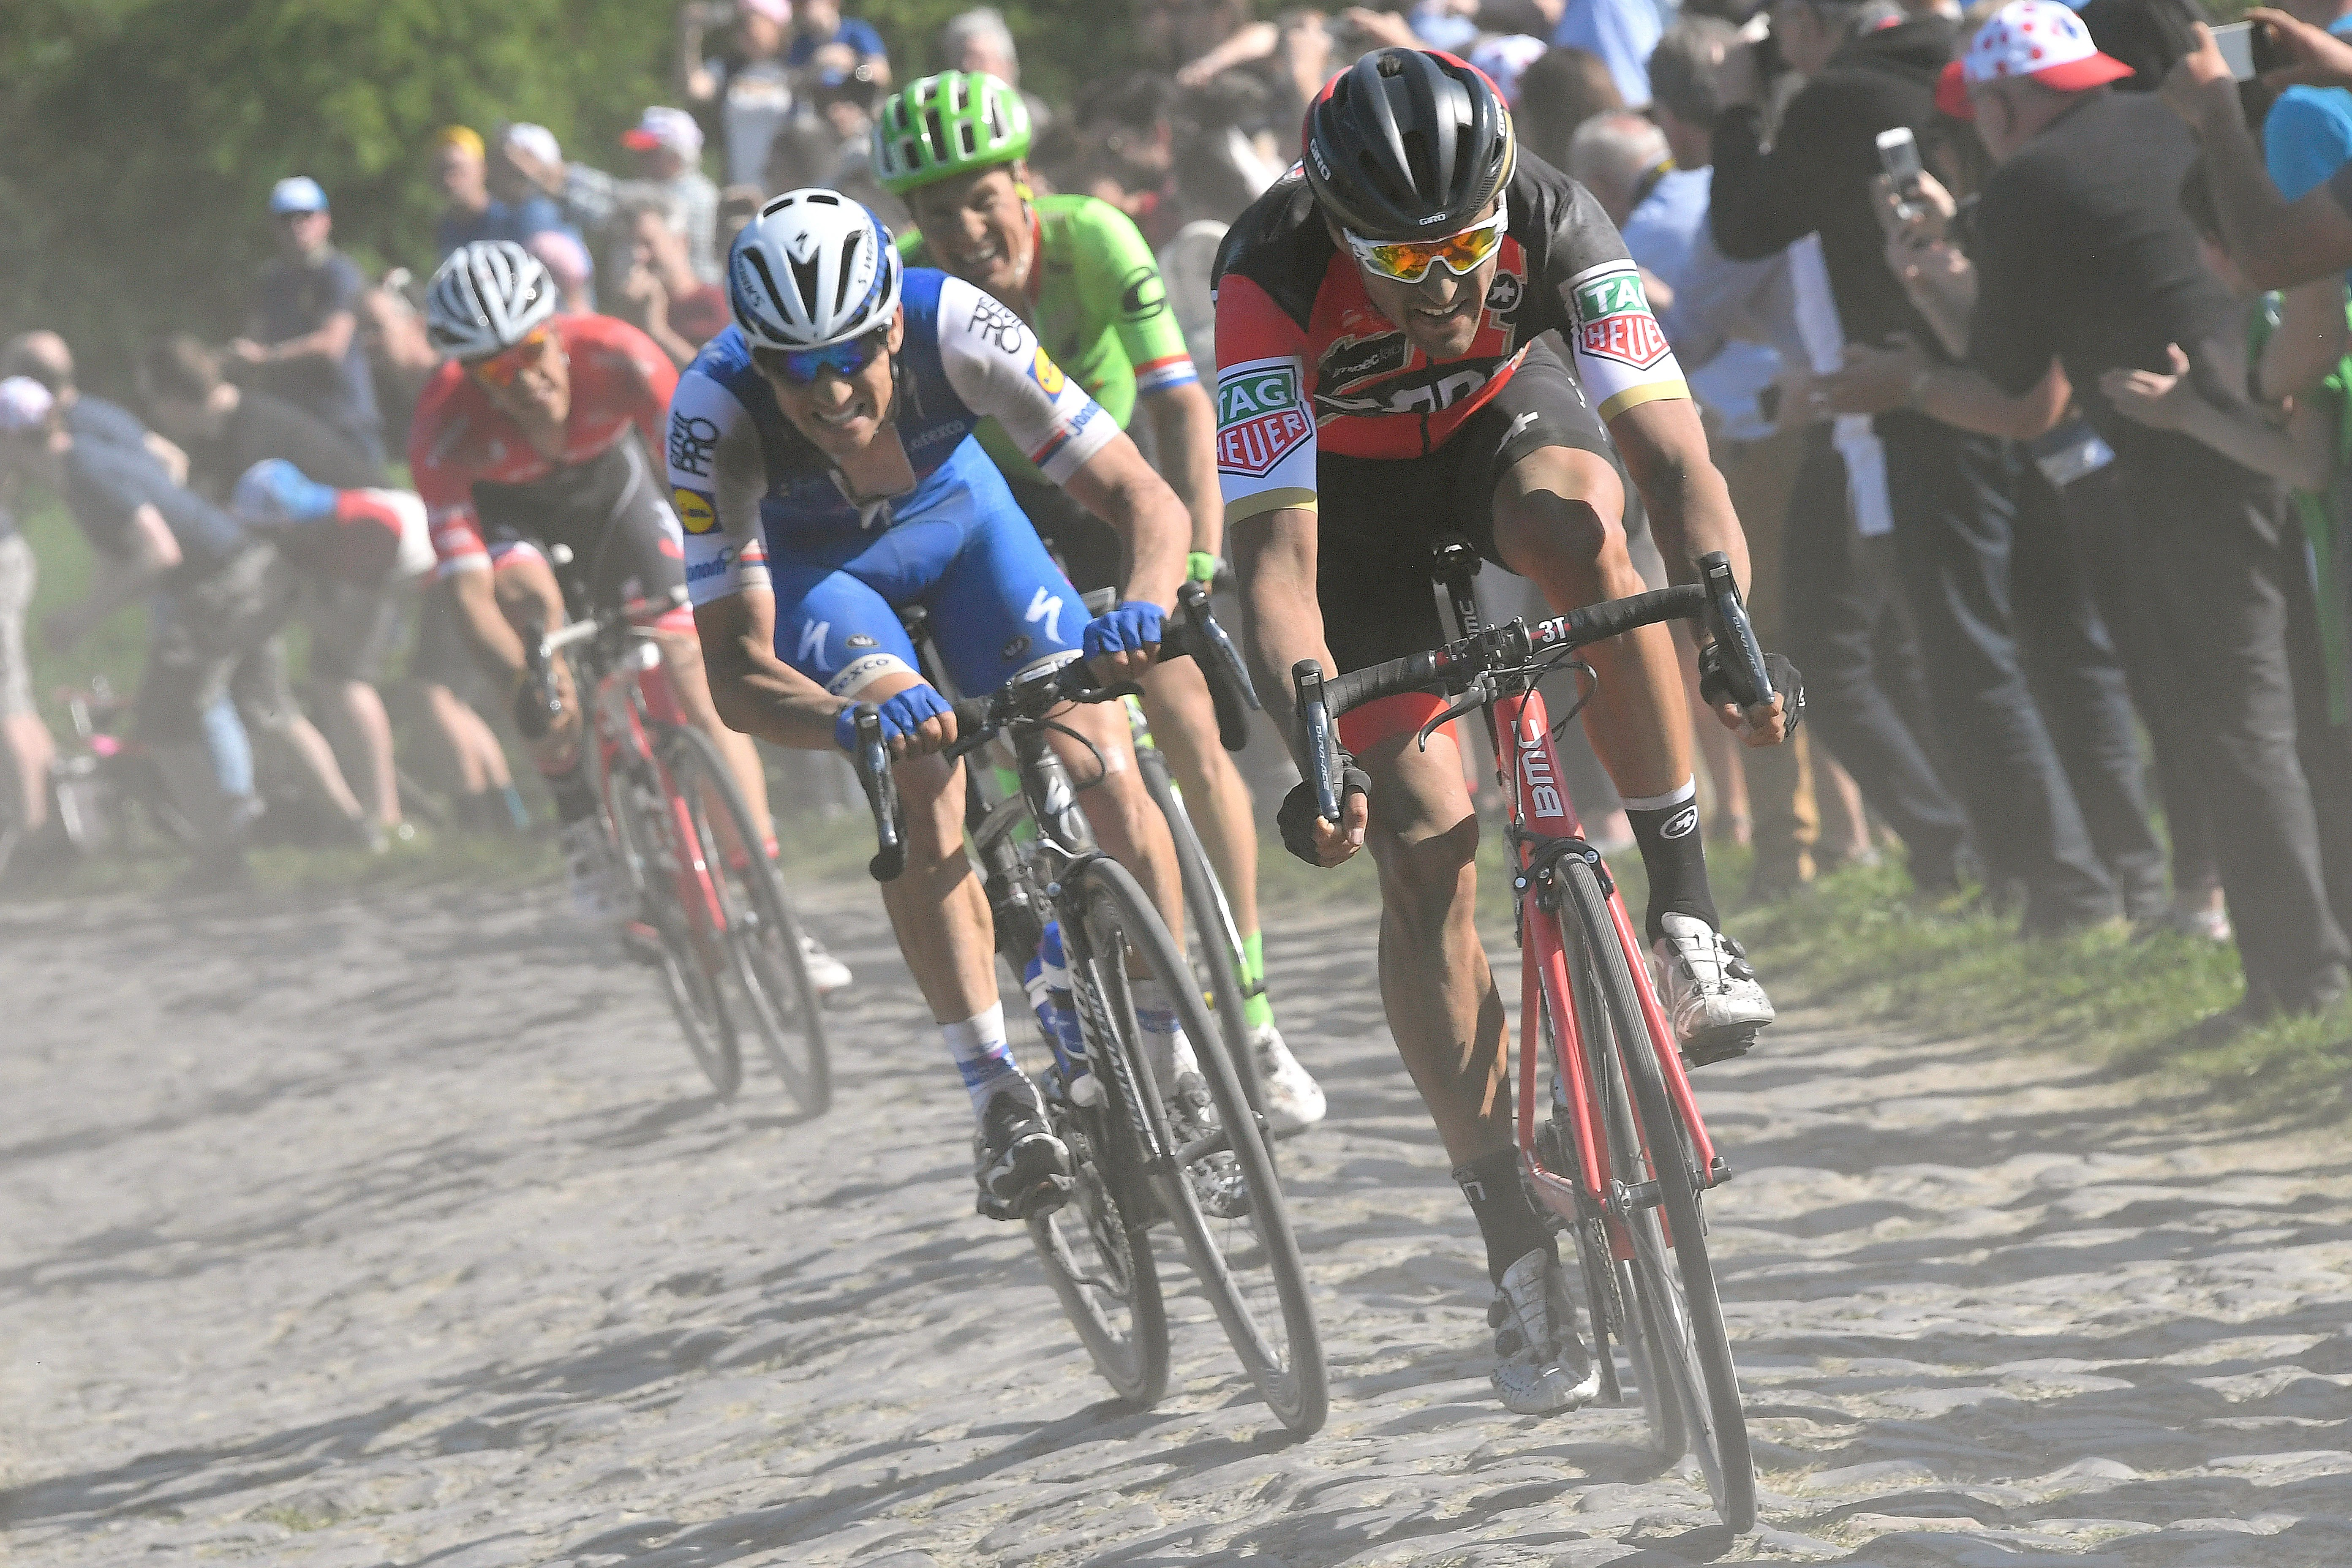 Point P Roubaix Flanders Vs Roubaix What Do The Riders Think Velonews